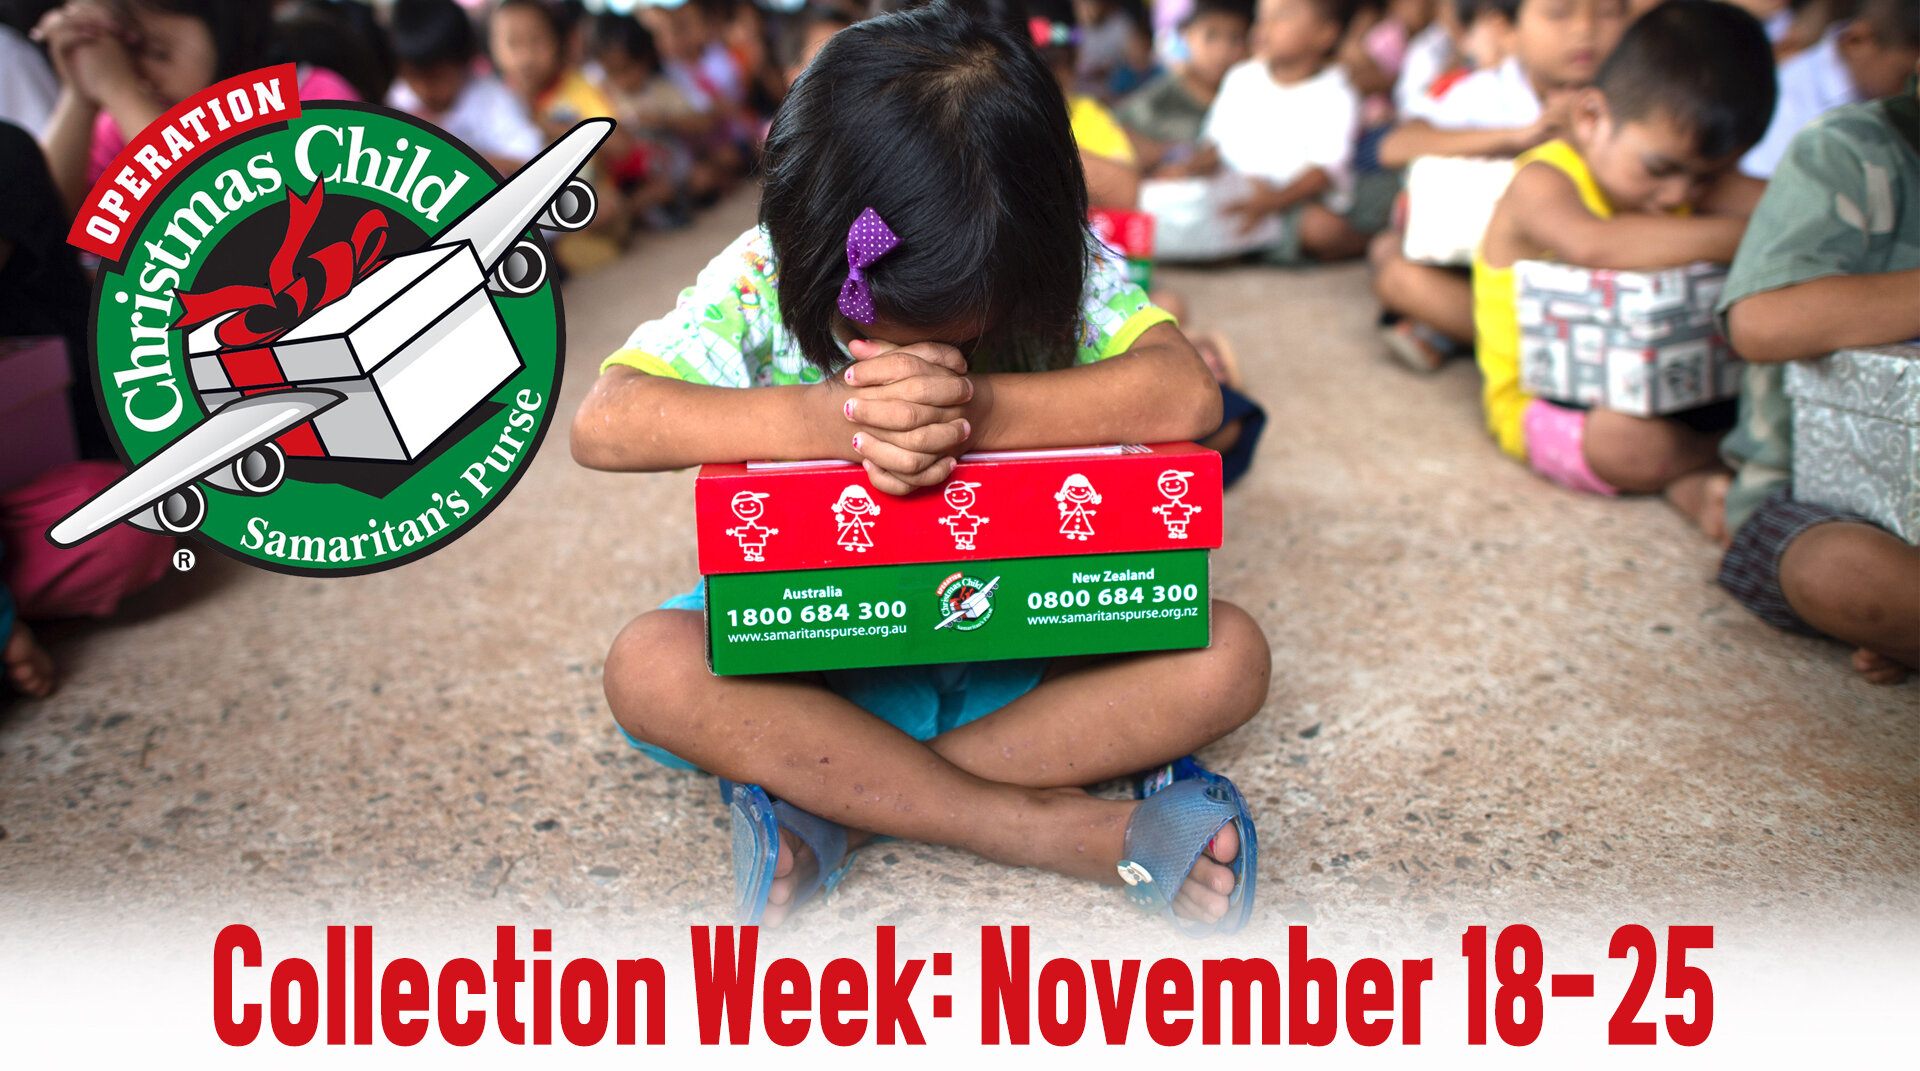 Operation Christmas Child Collection week insert 2019.jpg